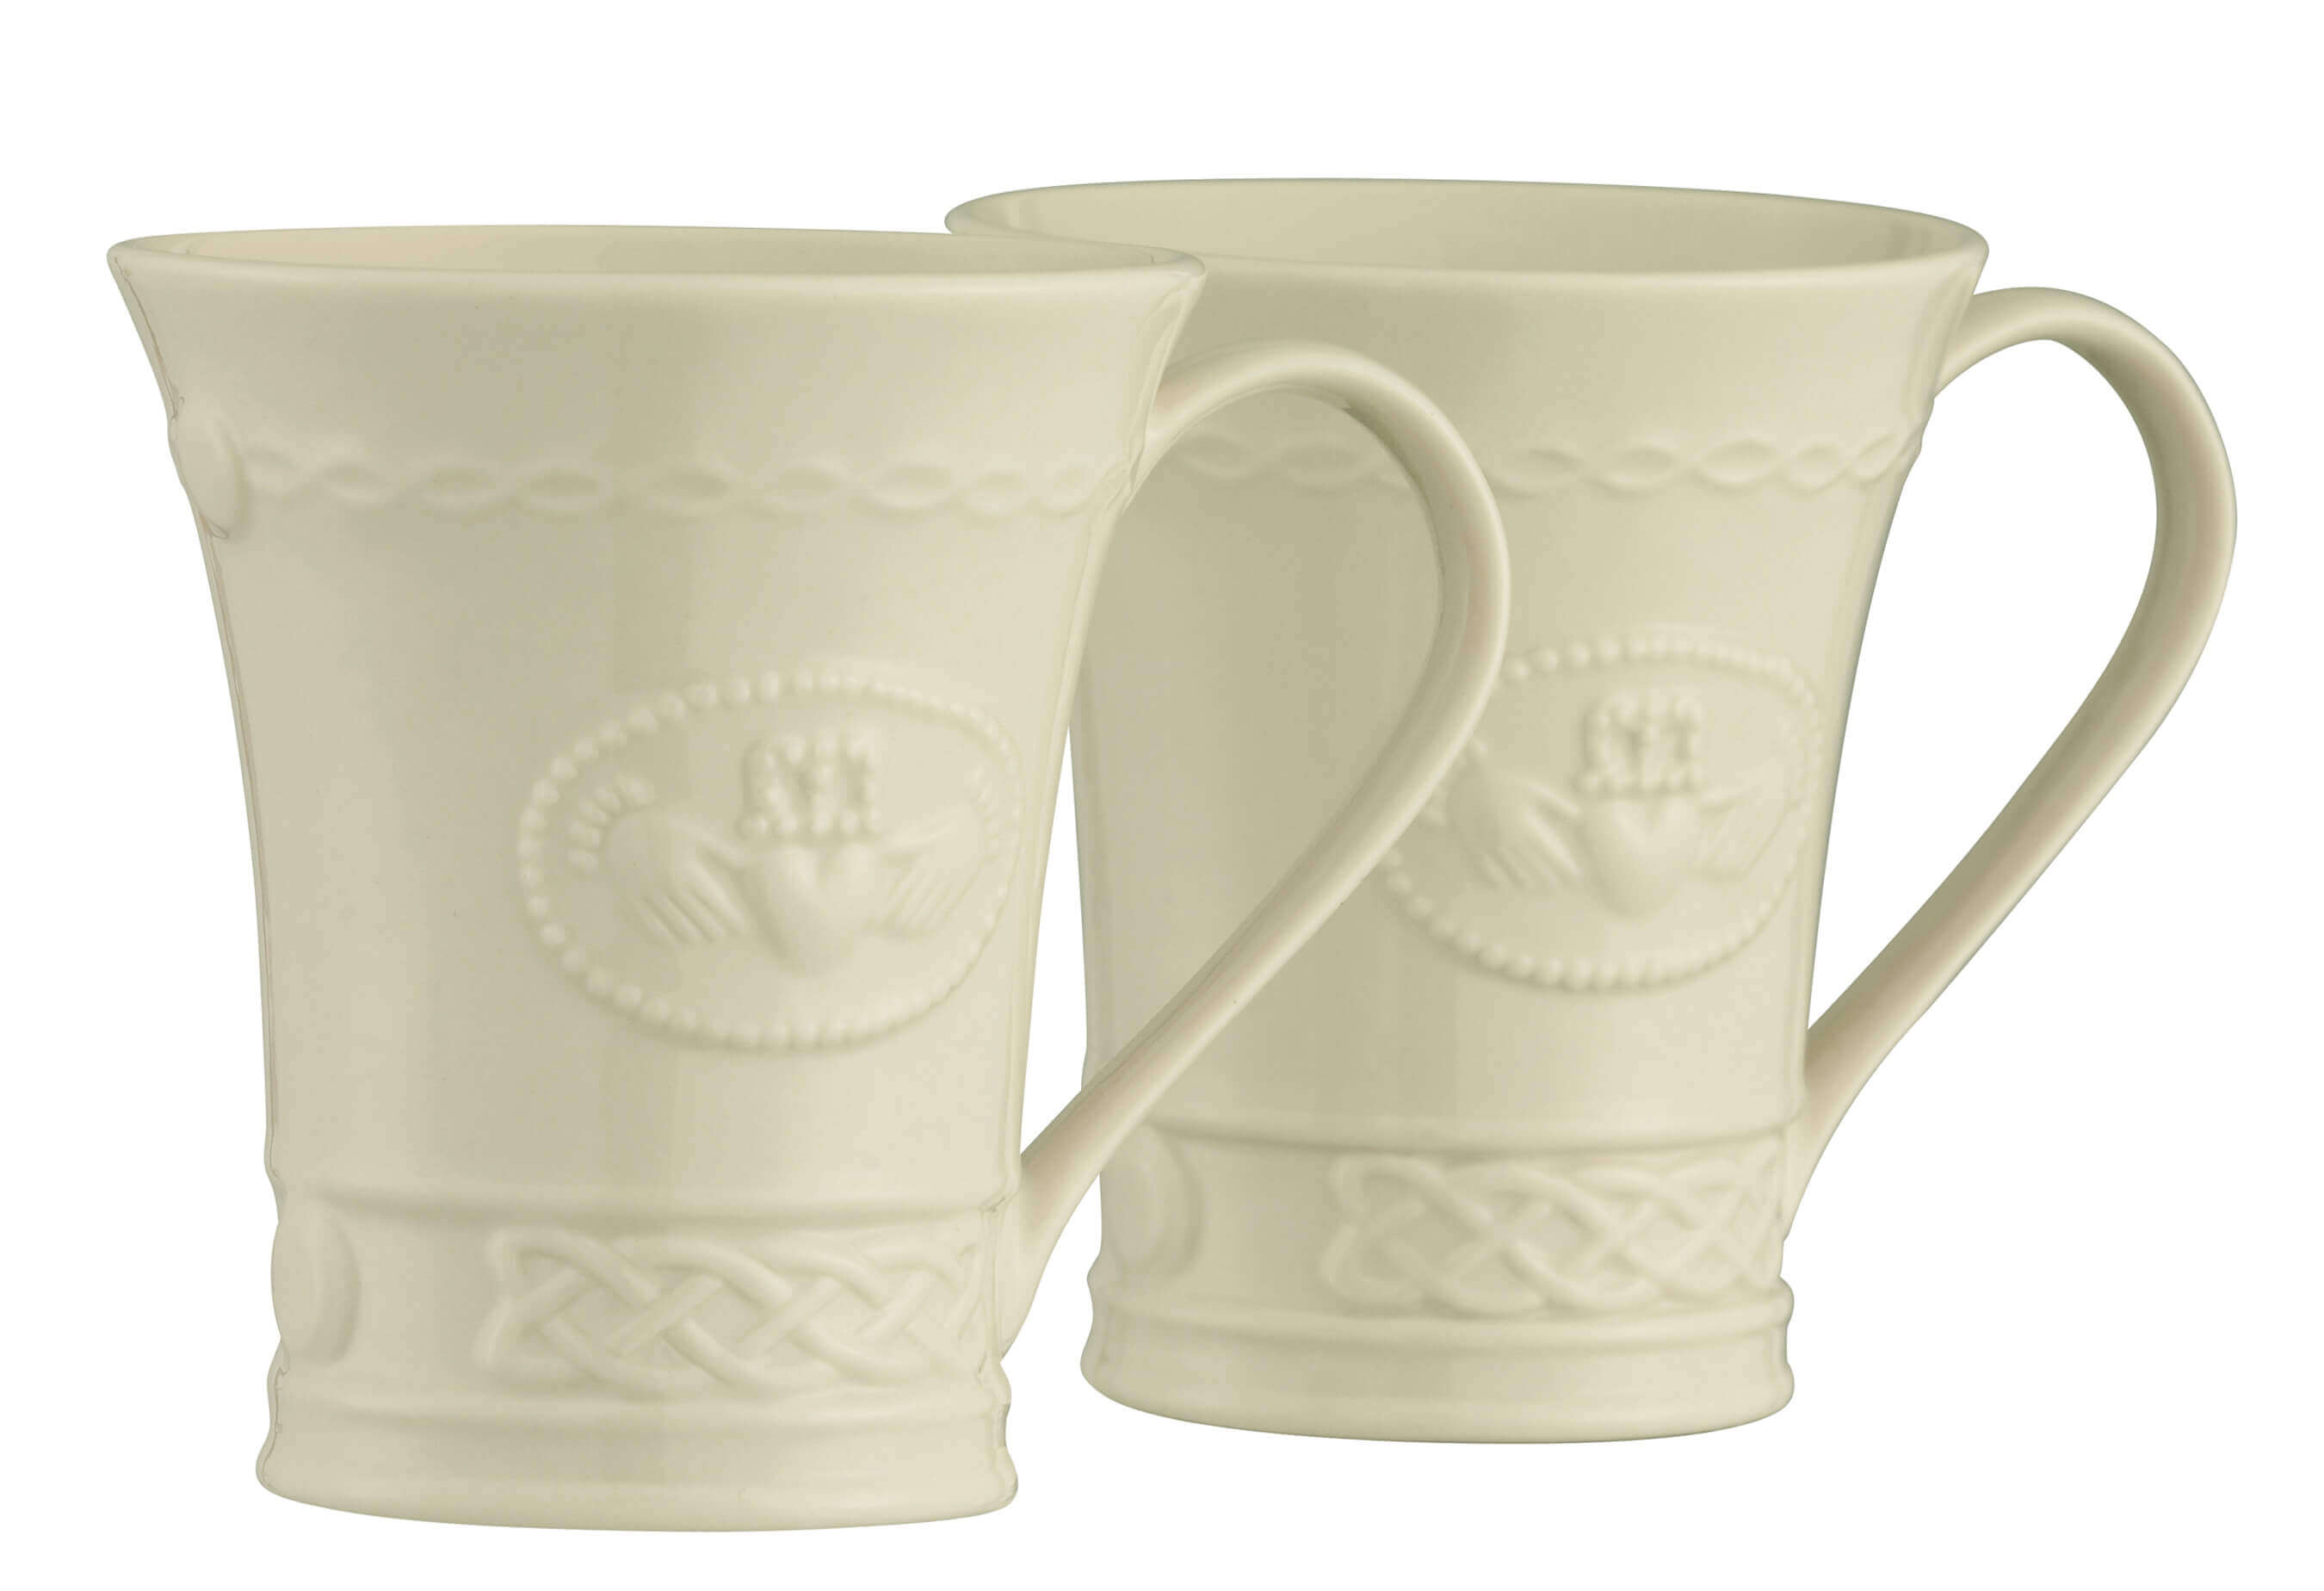 Belleek Fine Parian China Celebrating 160 Years Handcrafting Unique Irish Pottery Designs